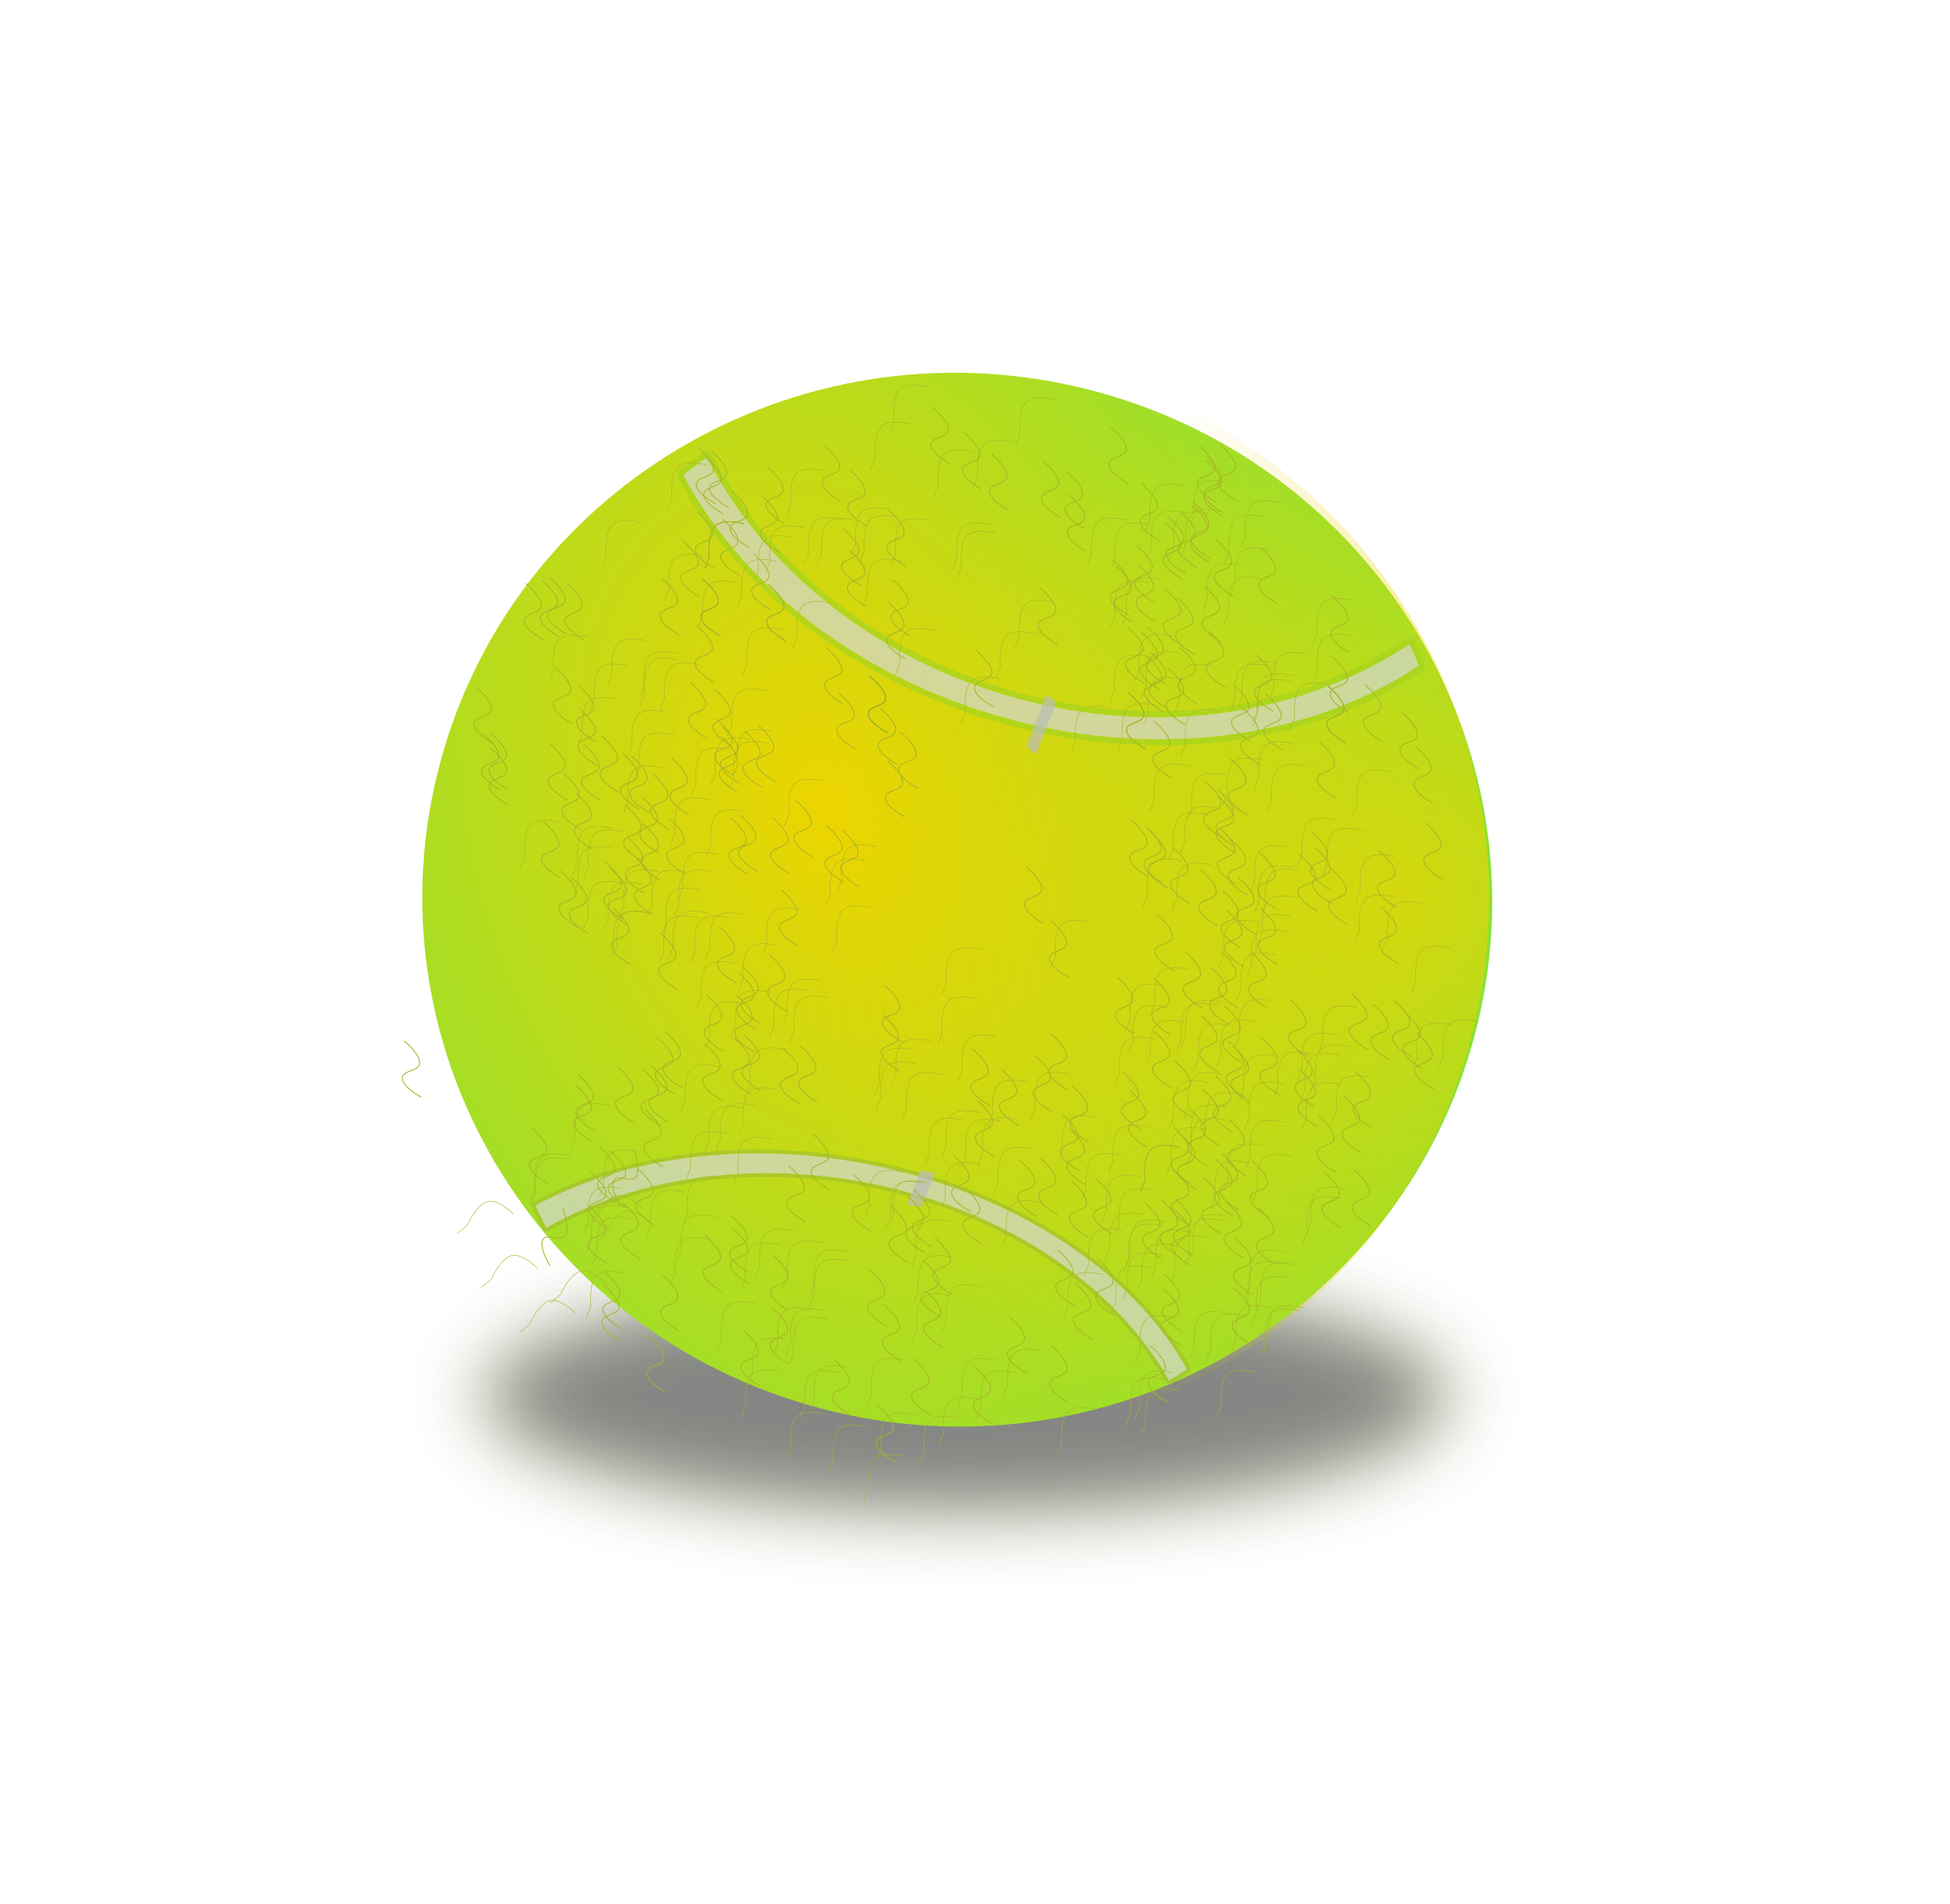 Big and small ball clipart graphic transparent library Clipart - Tennis ball graphic transparent library